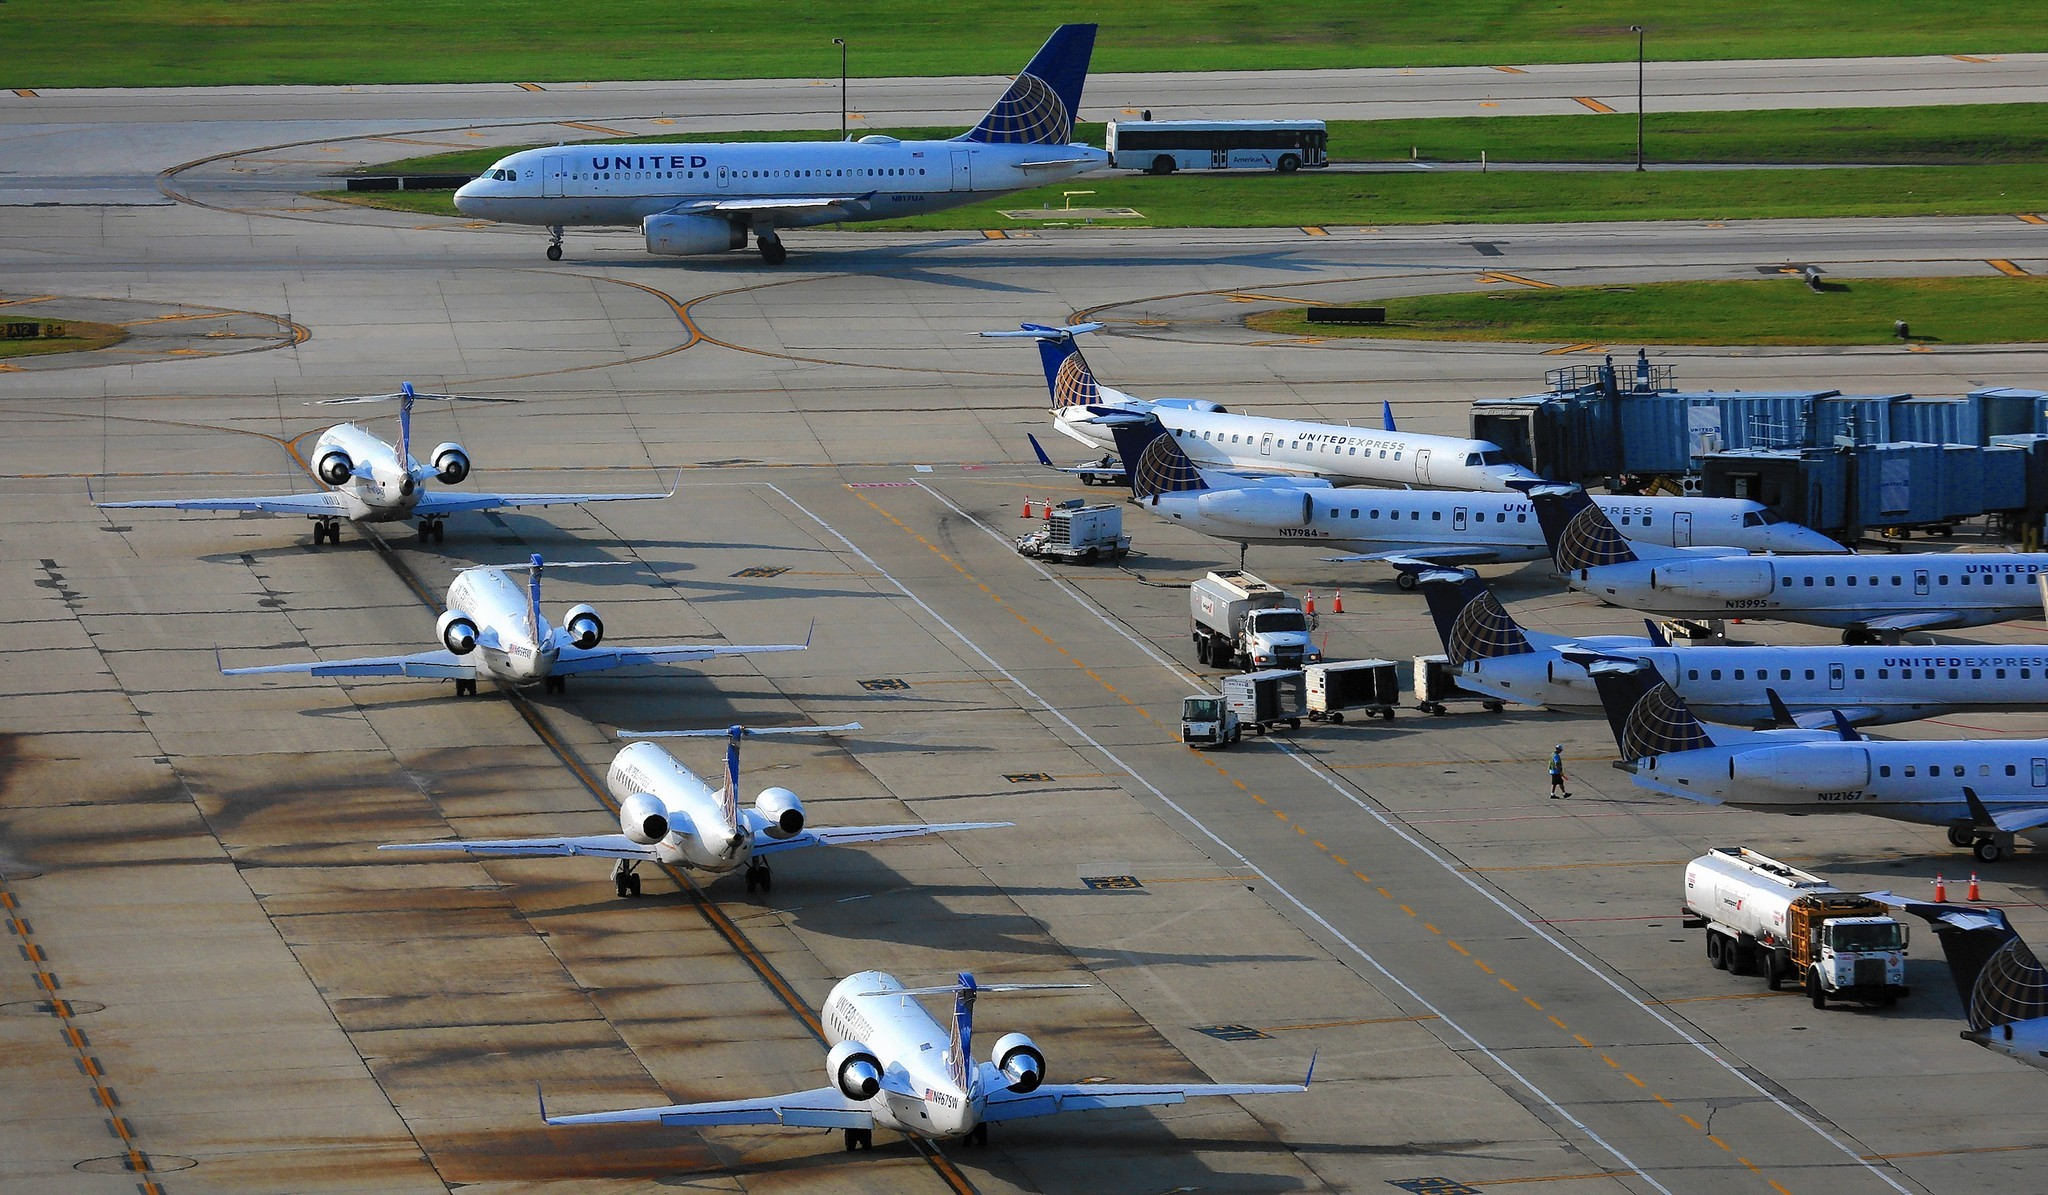 Rule To Prevent Tarmac Delays Backfires For Airline